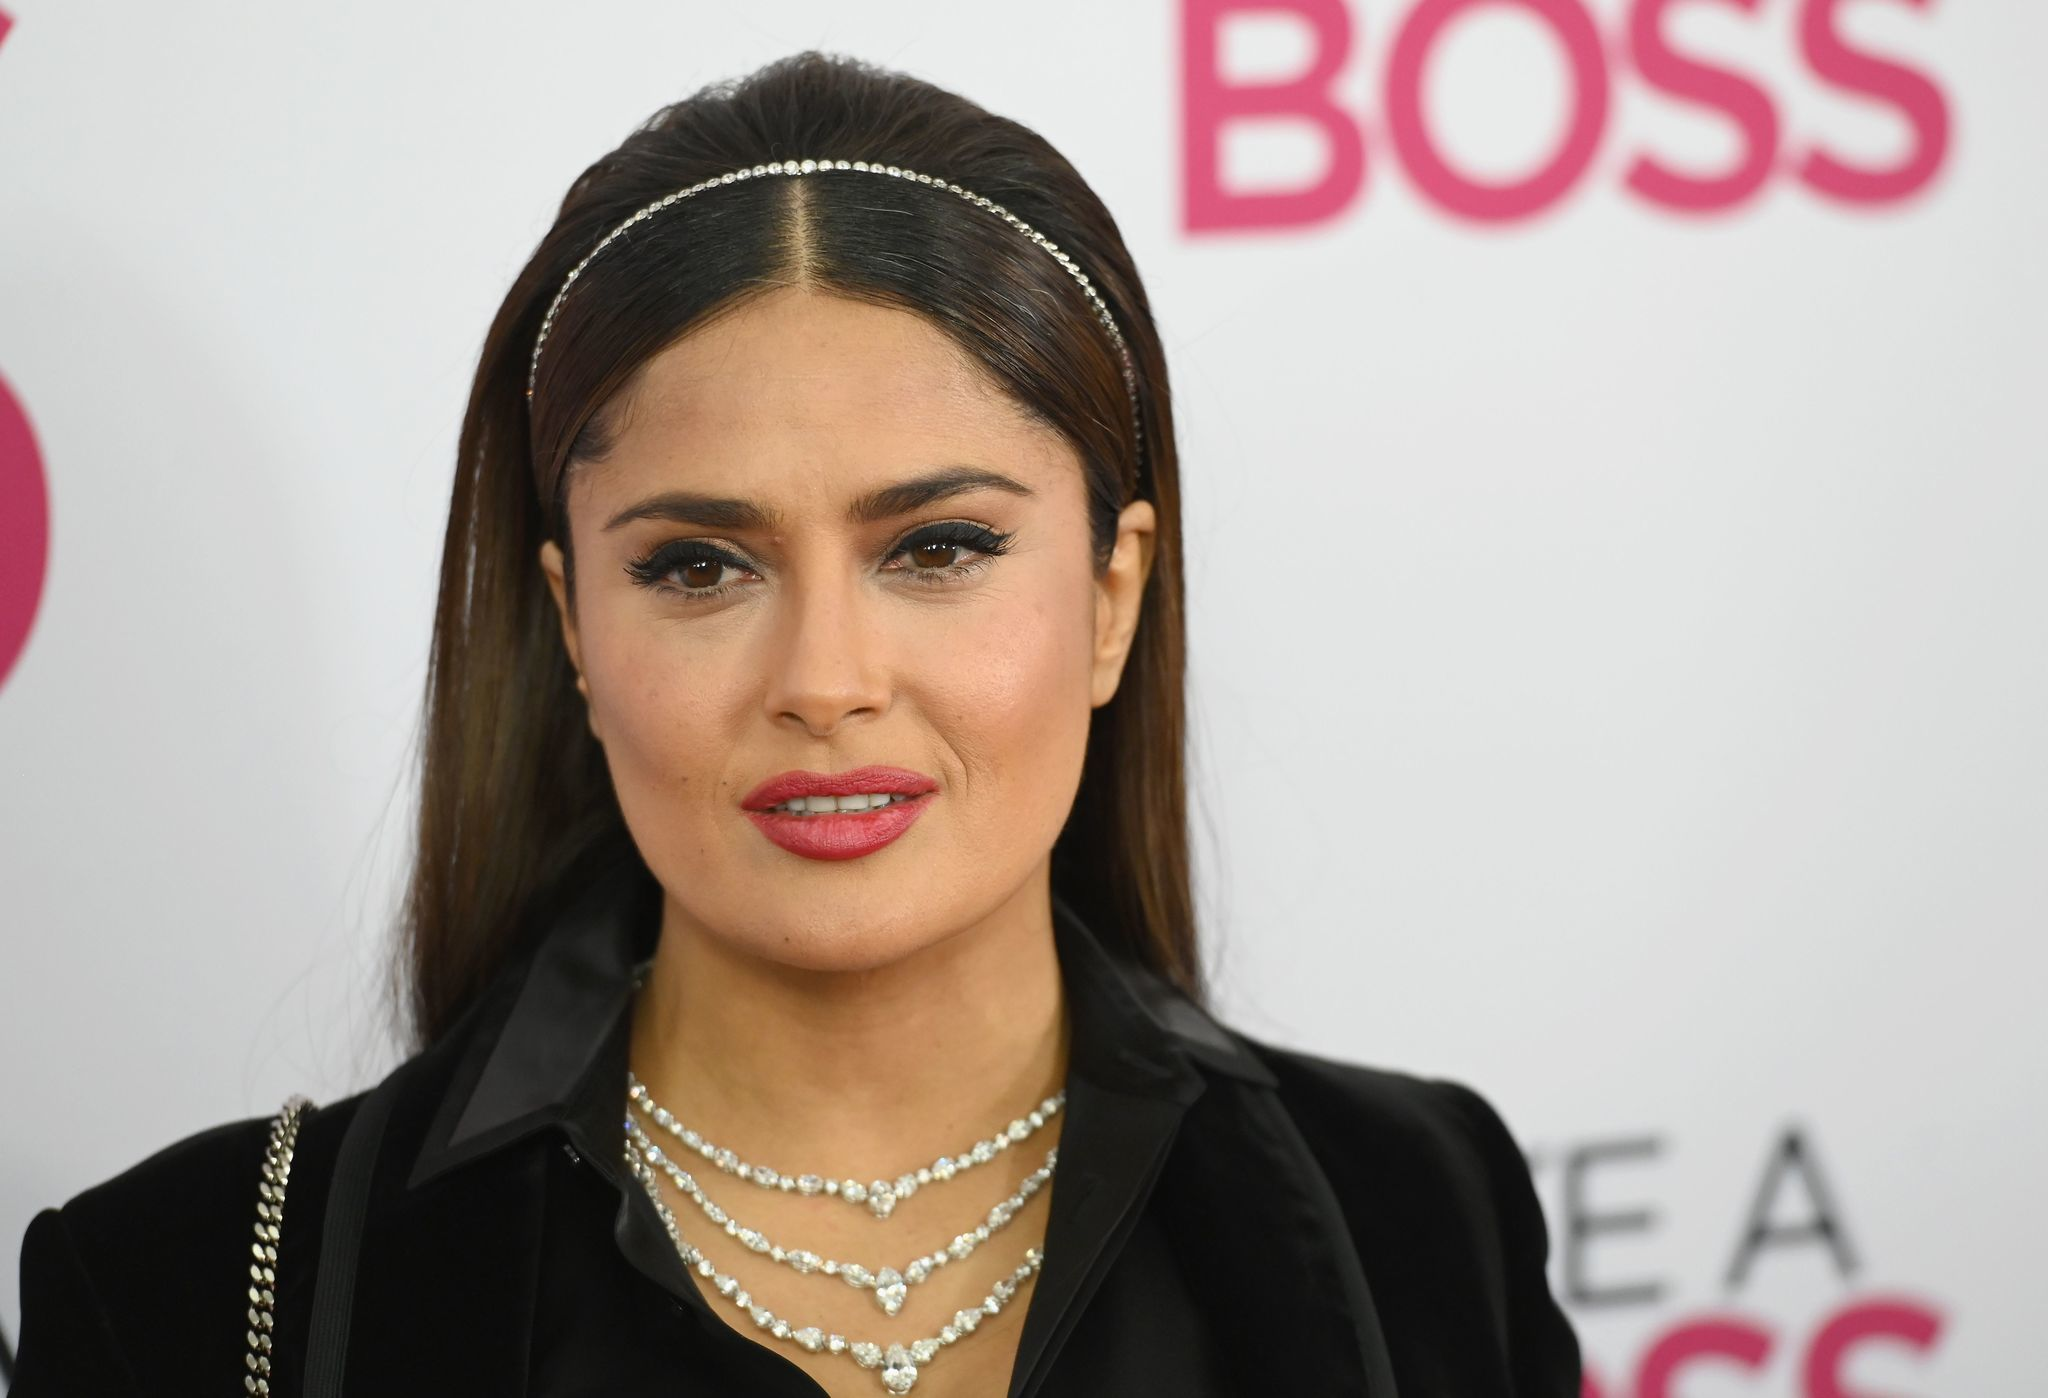 Salma Hayek apologizes for praising controversial book without reading it